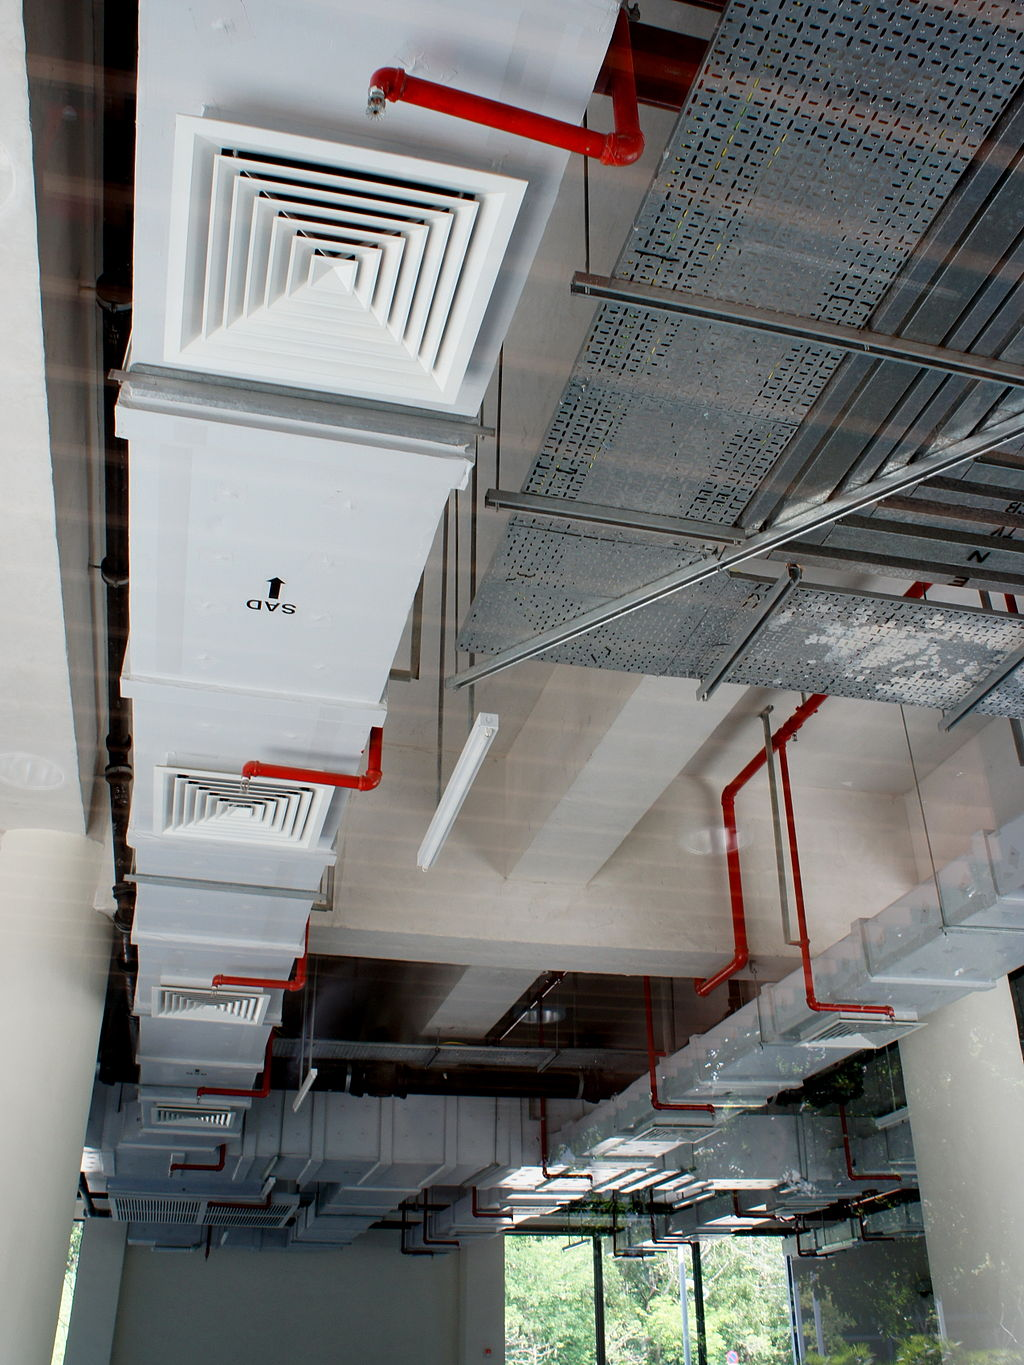 image - How Often Should Air Ducts Be Cleaned